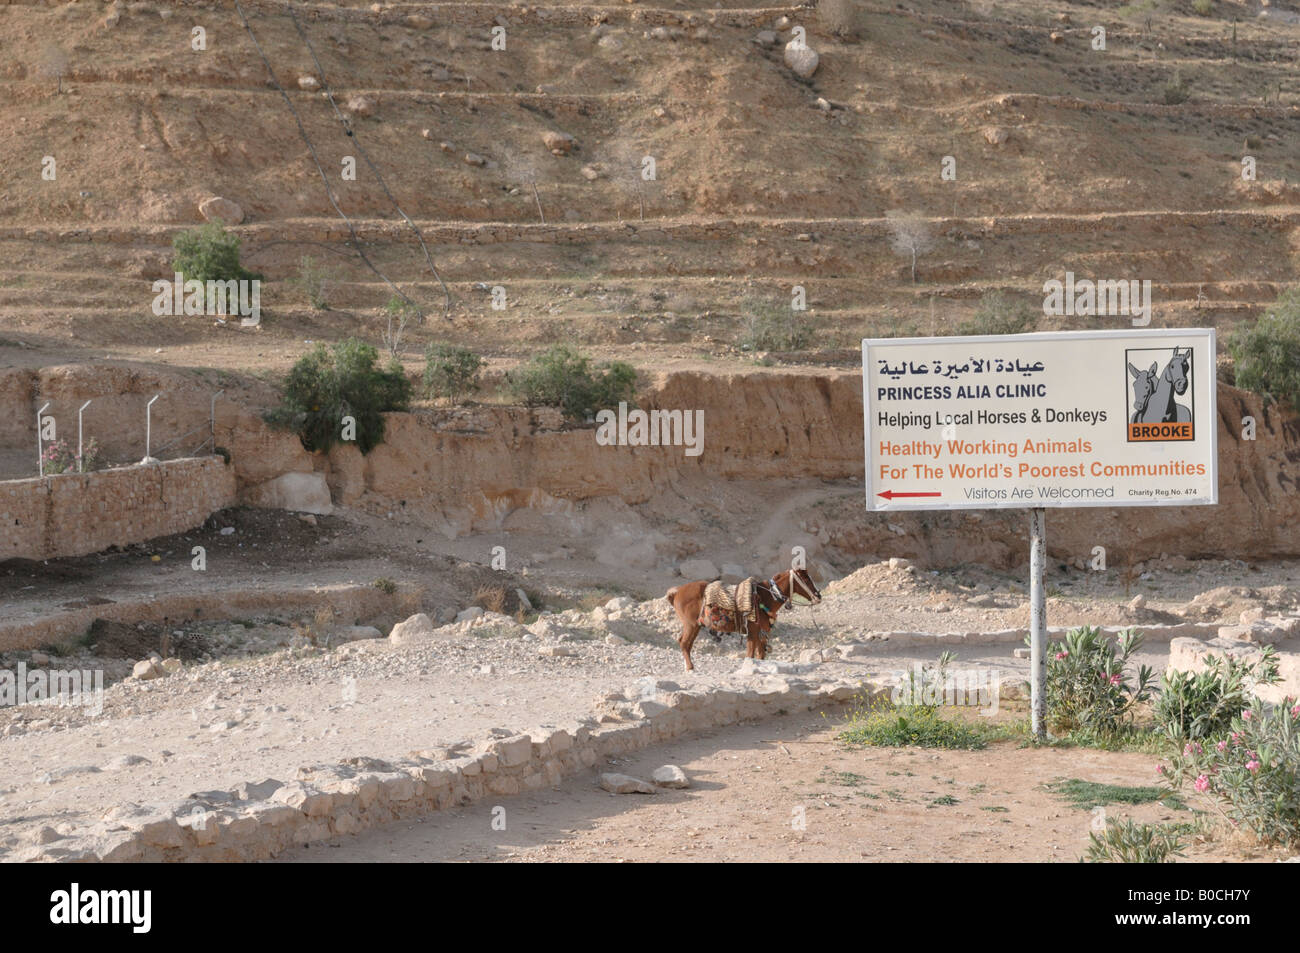 Middle East Jordan Petra Princess Alia Horse and Donkey Clinic - Stock Image